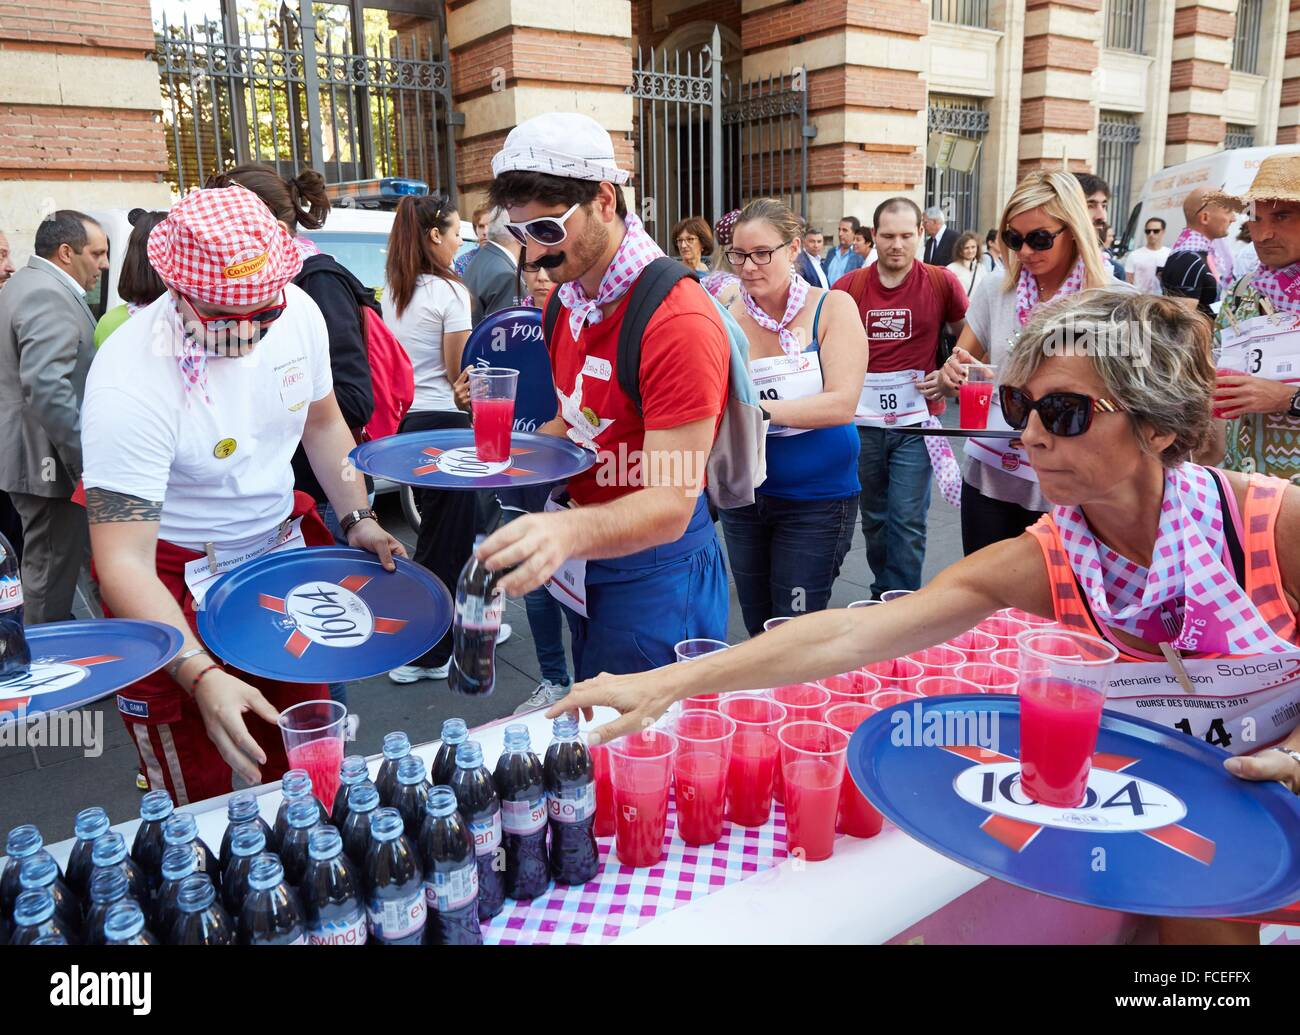 Waiters sporting event. Toulouse. Haute Garonne. France. - Stock Image